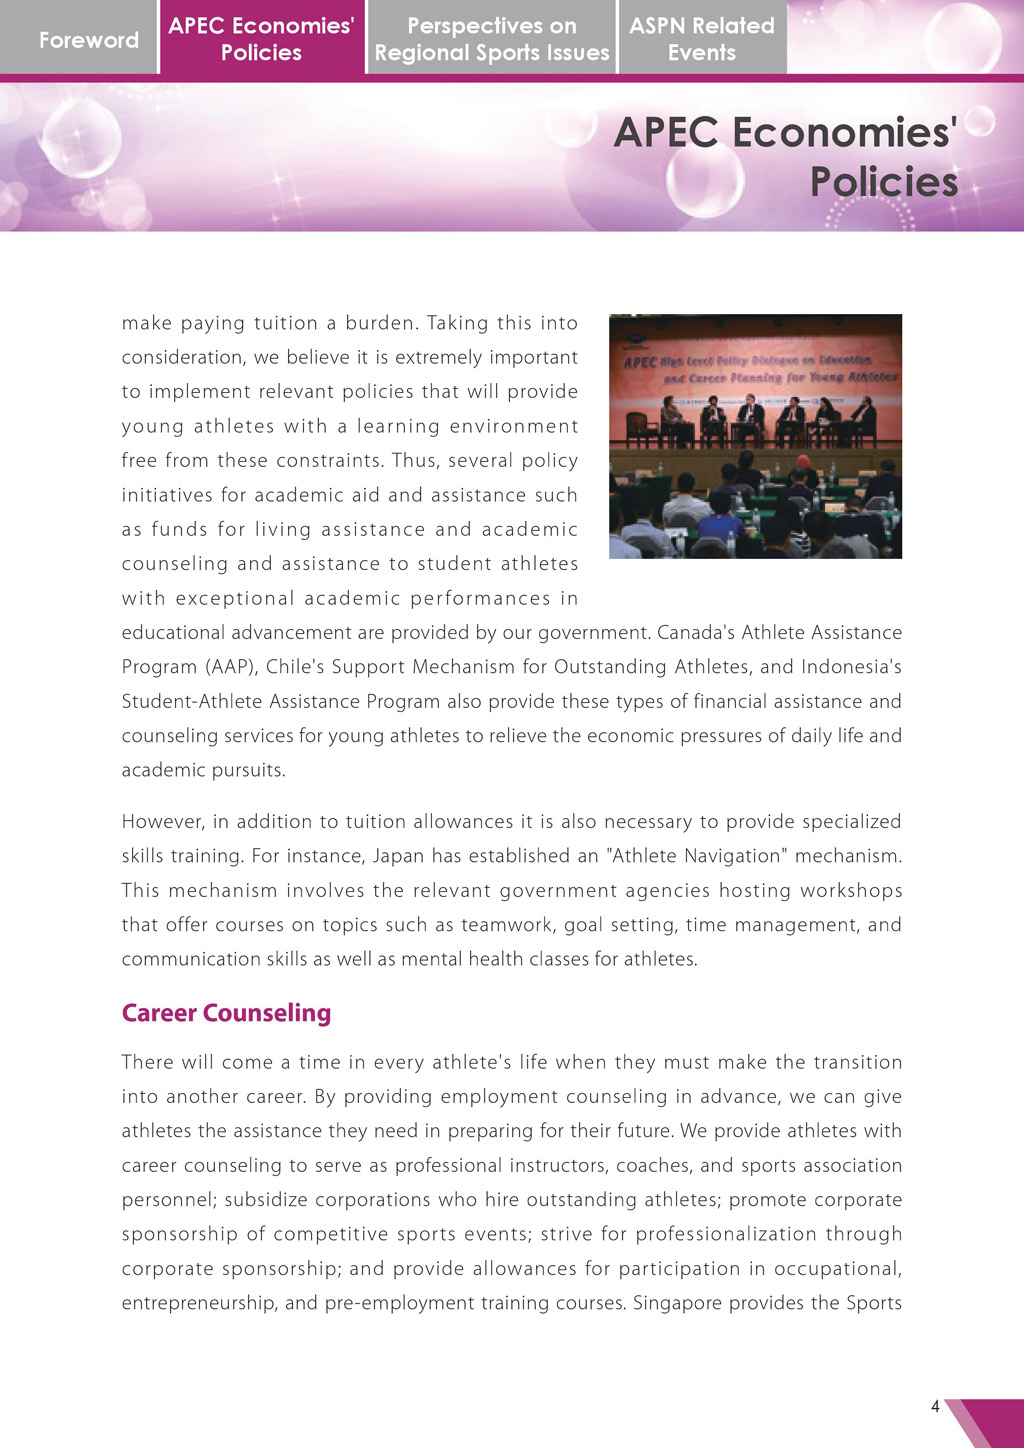 APEC Sports Newsletter Issue 1 April 2017 P.4